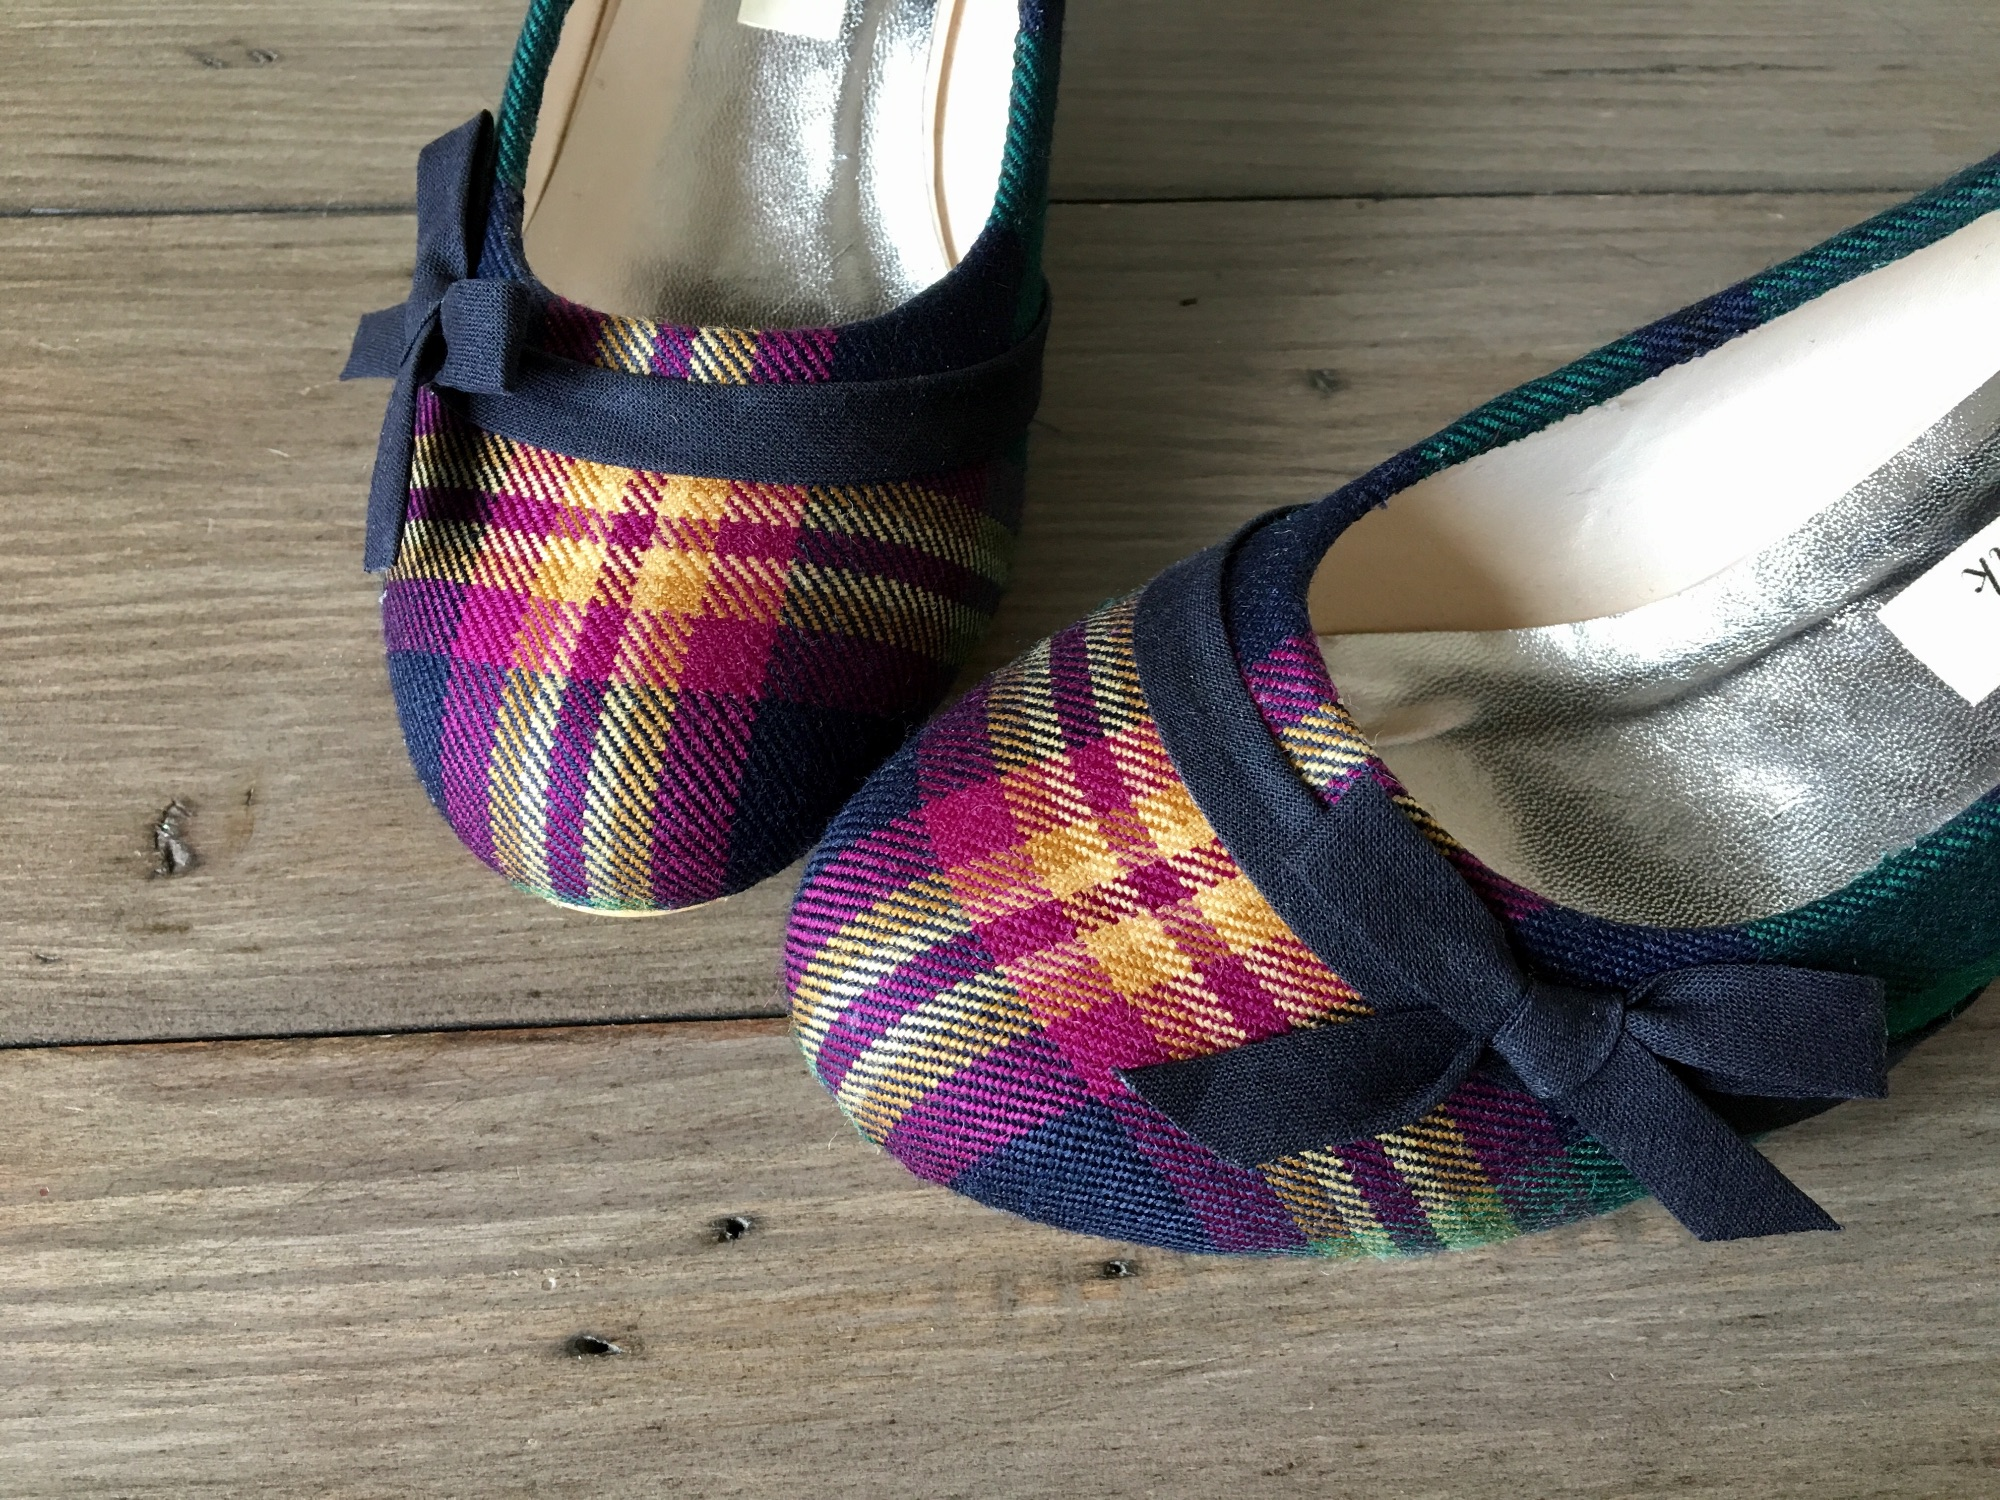 custom purple tartan shoes with navy bows made by Lace and Love